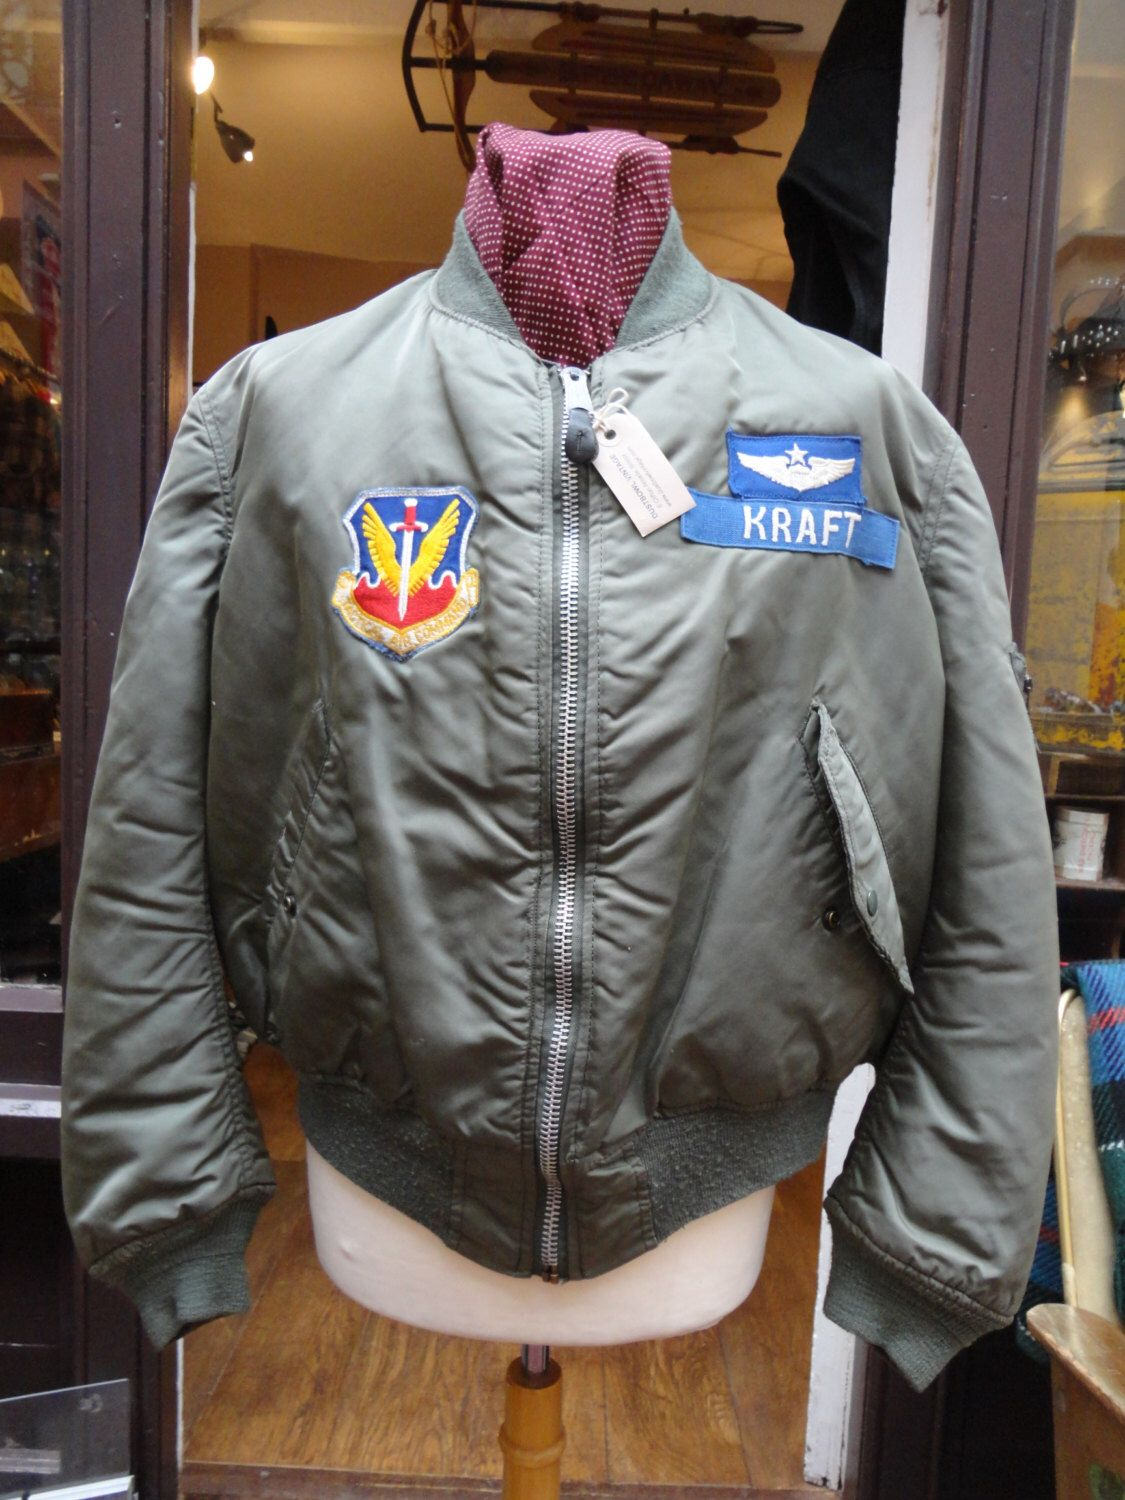 Pin by Brad Beyer on style | Jackets, Vintage, Air force